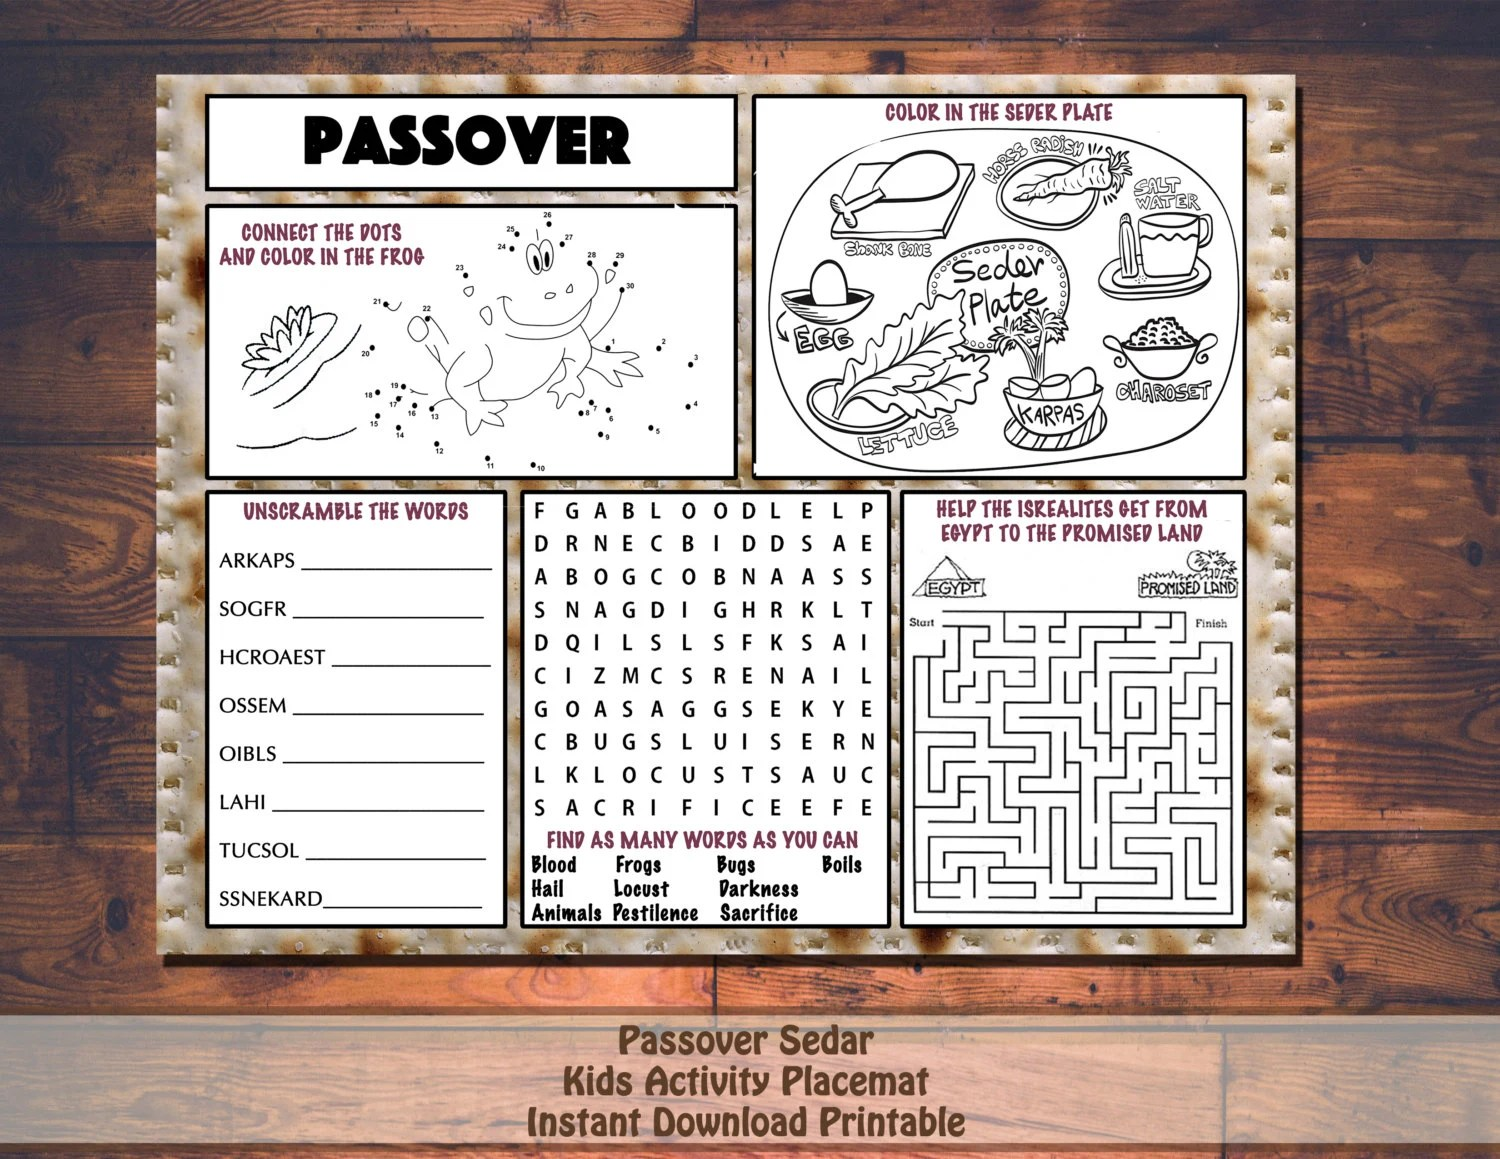 Kids Passover Pesach Activity Printable Placemat Instant